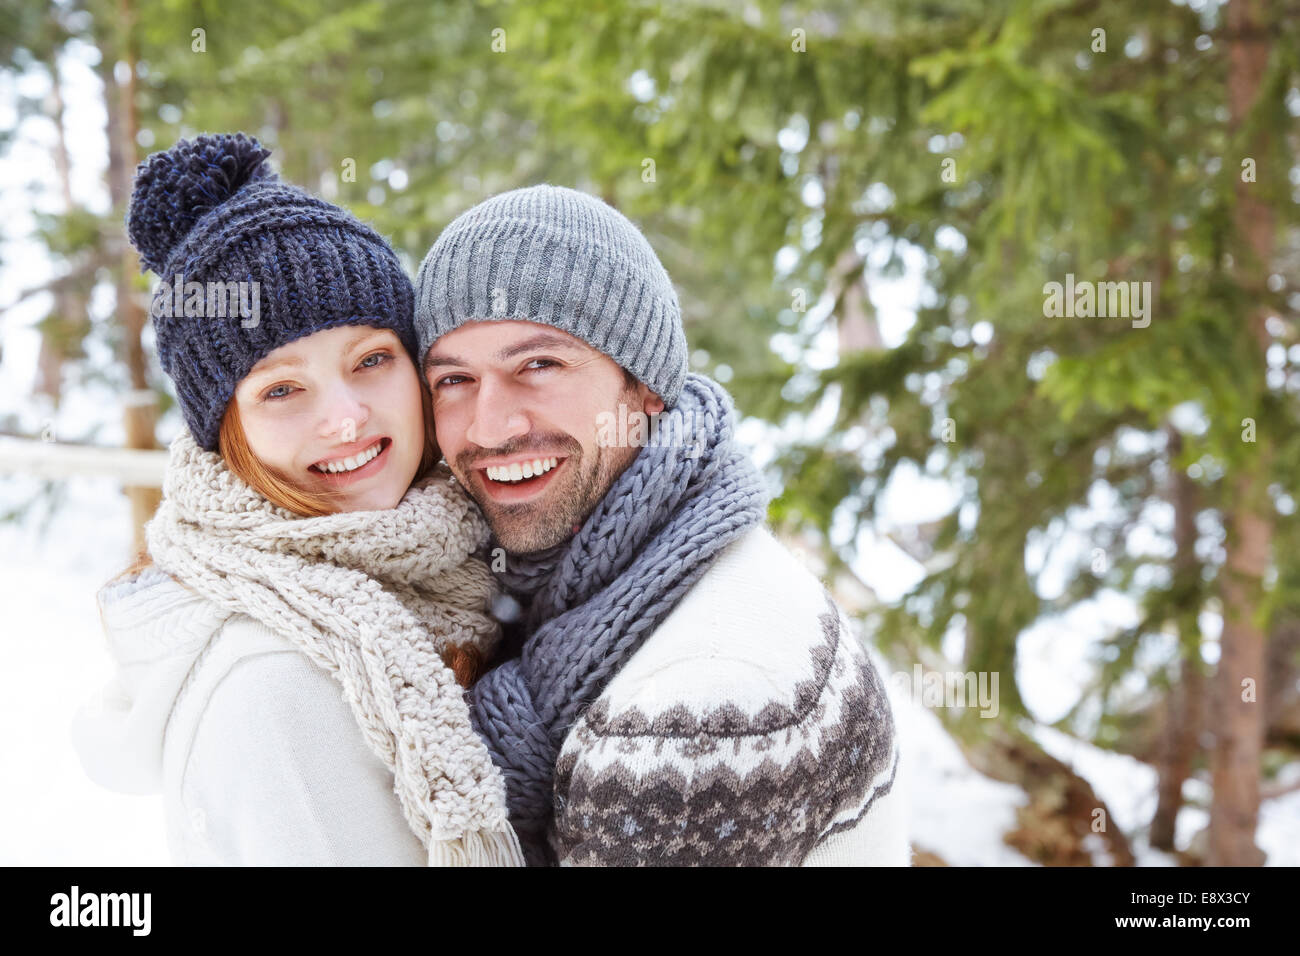 Couple hugging in snow Stock Photo